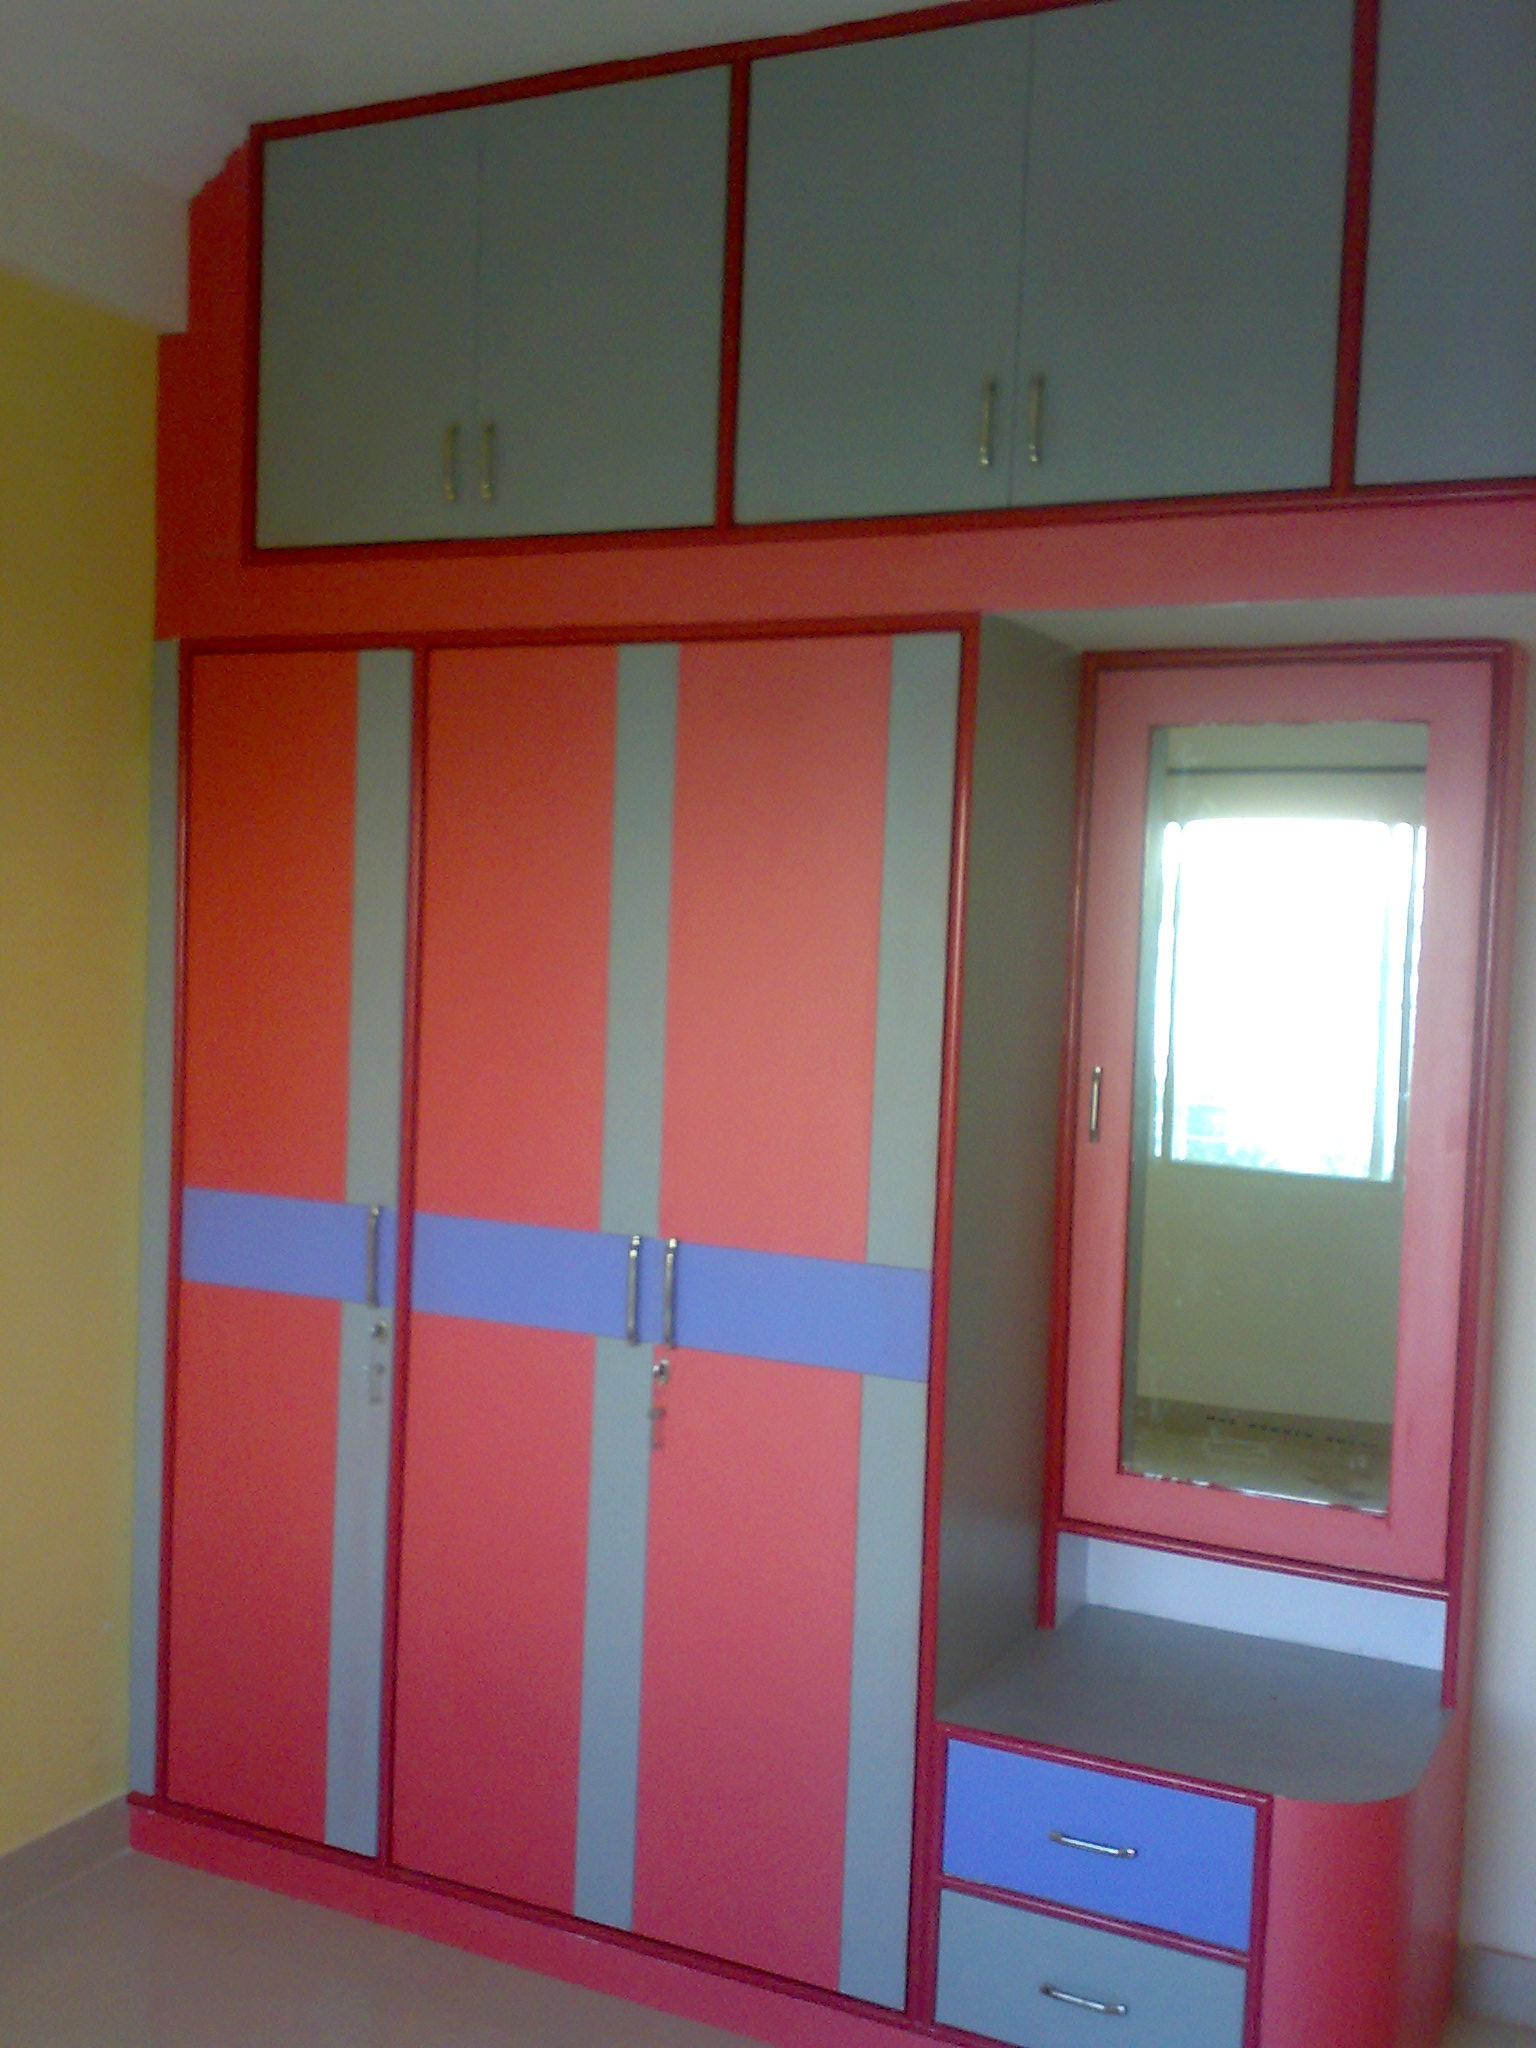 Bedroom wardrobe design gharexpert Design wardrobe for bedroom